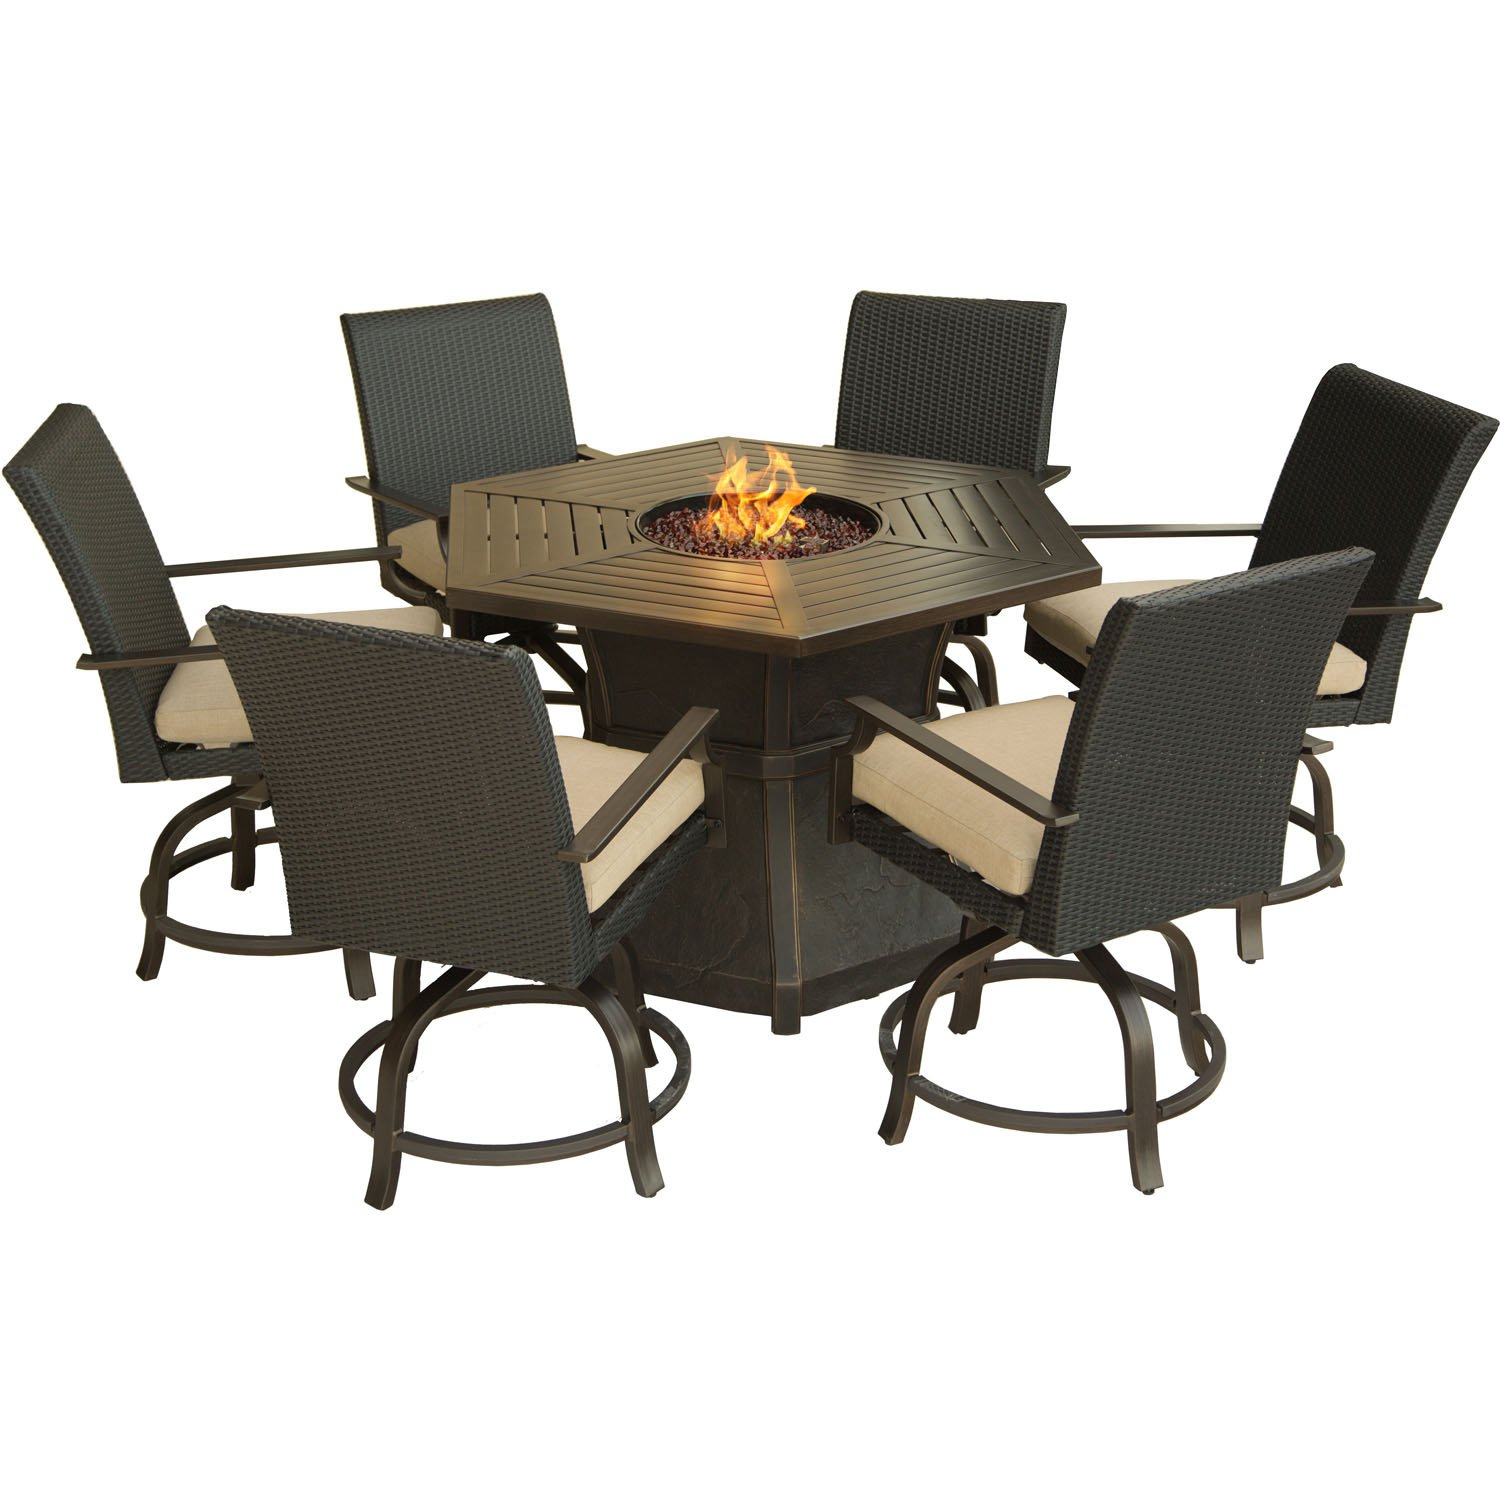 pendant fire middle dining elegant set fancy of furniture table the with patio pit outdoor in